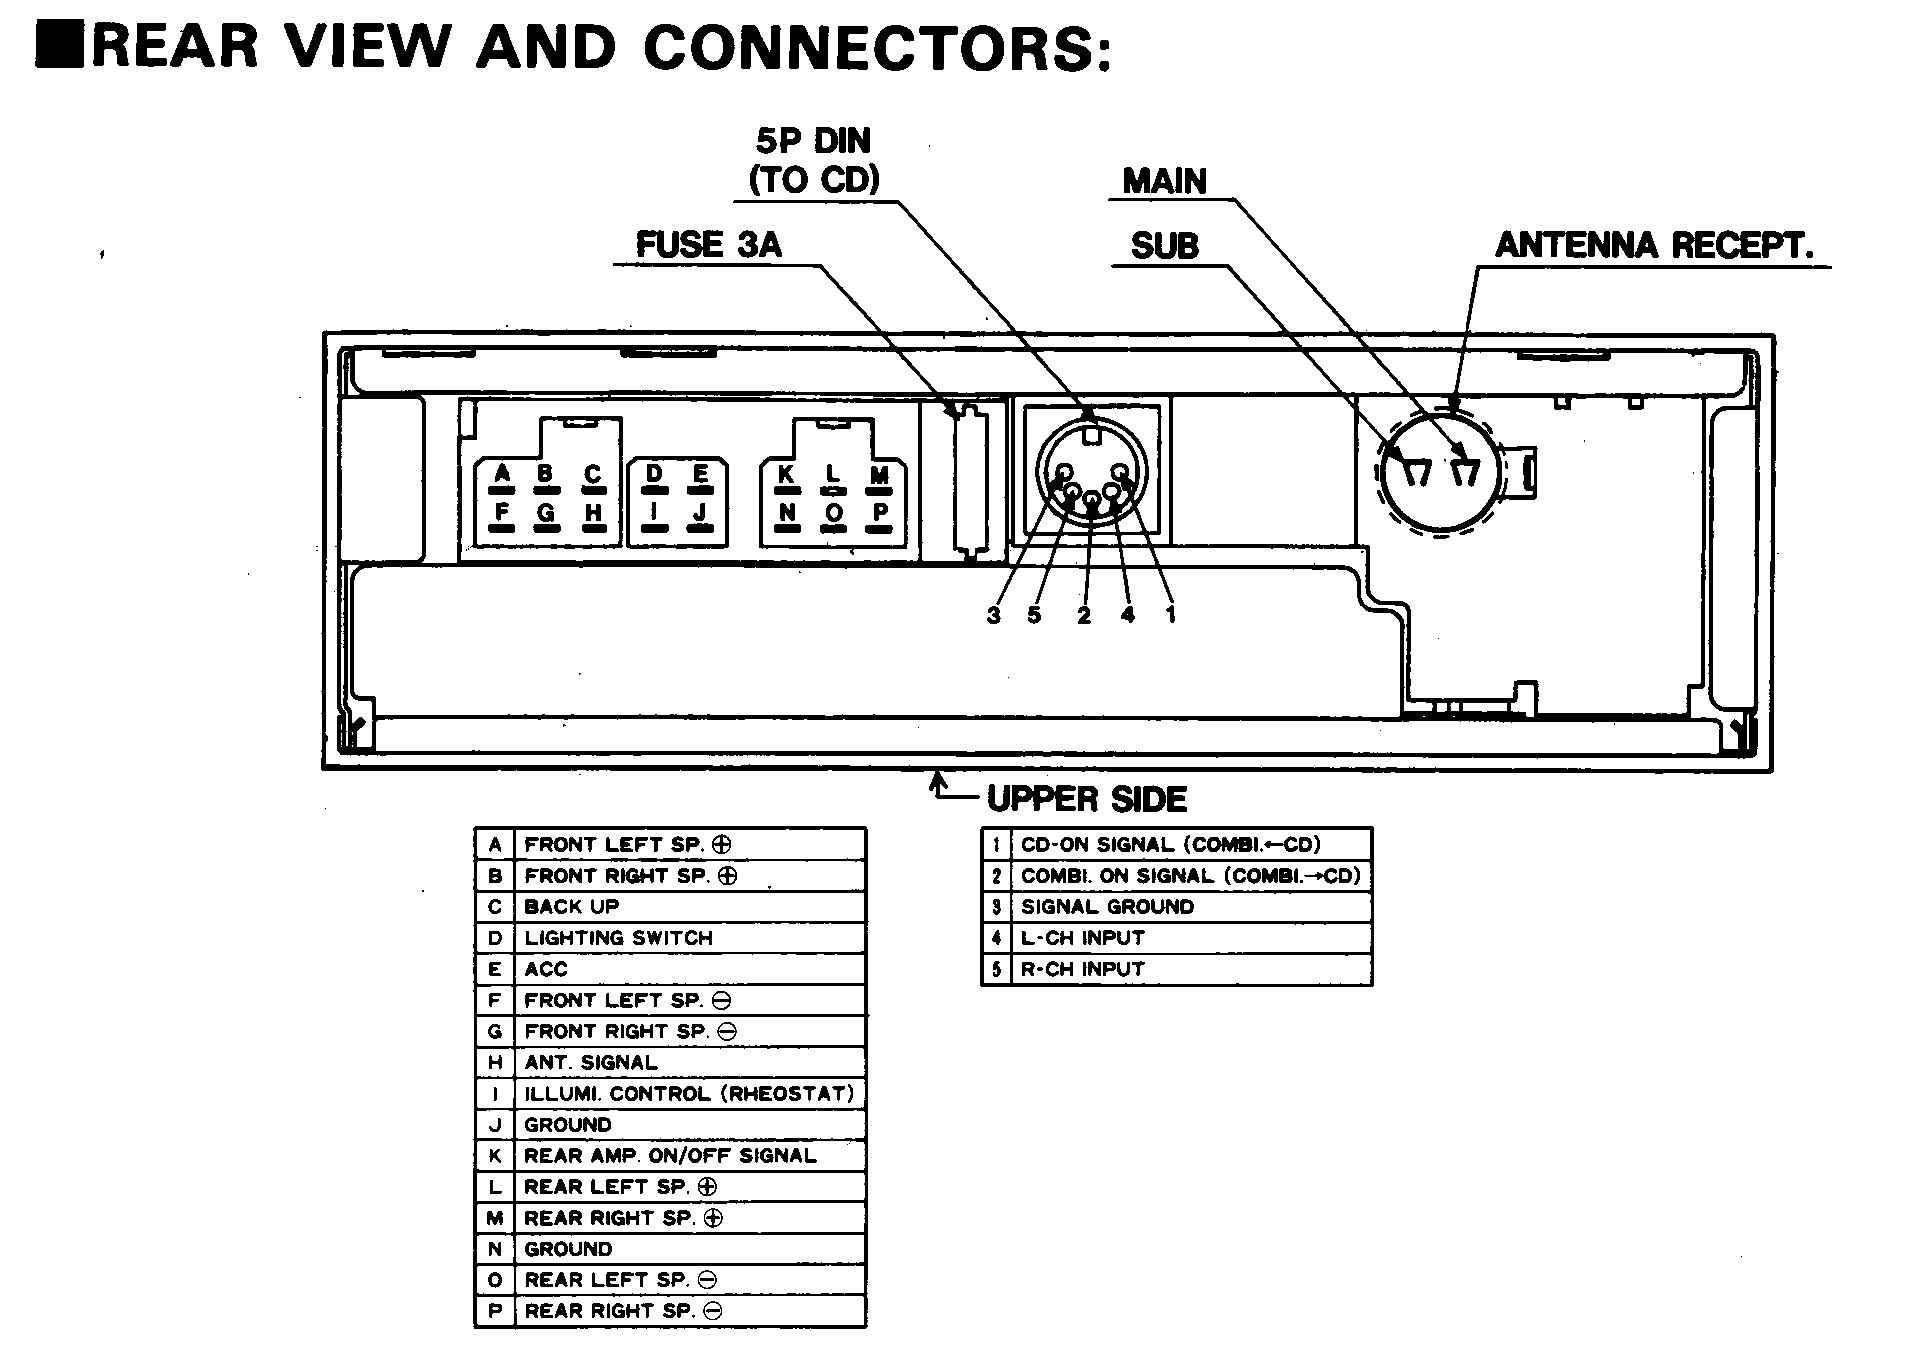 nissan car radio stereo audio wiring diagram autoradio connector wire installation schematic